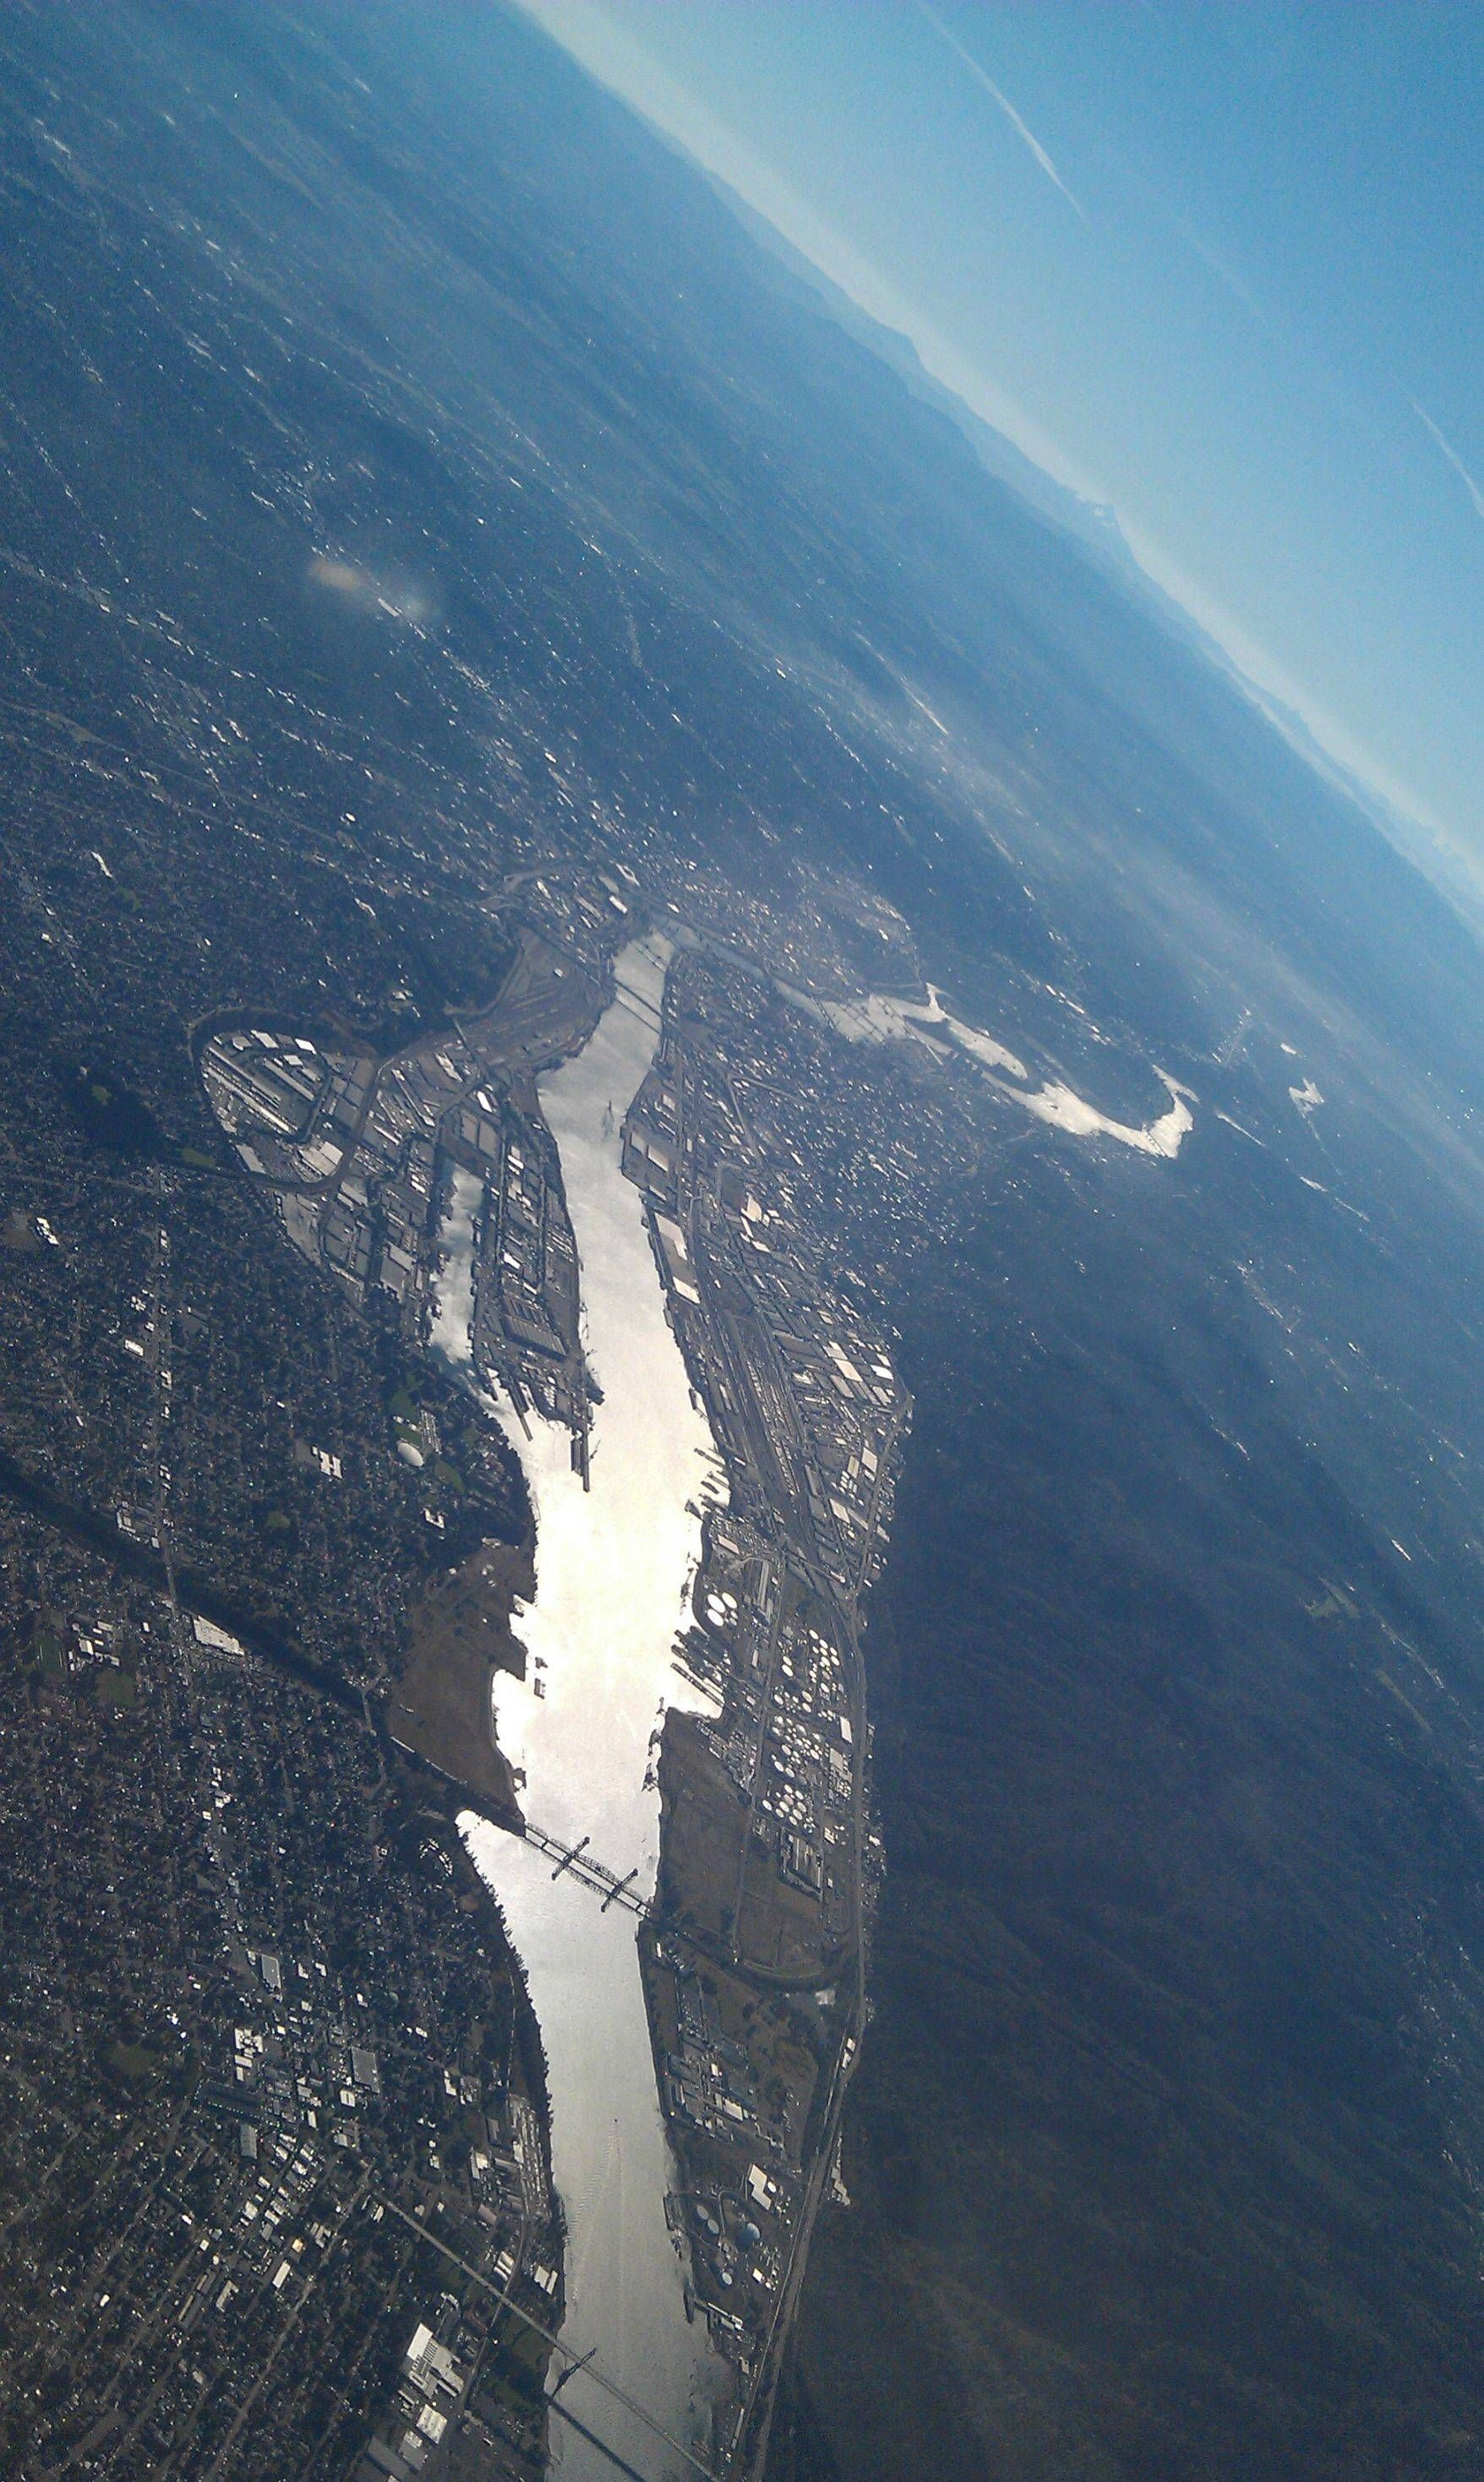 Portland, taken from the air